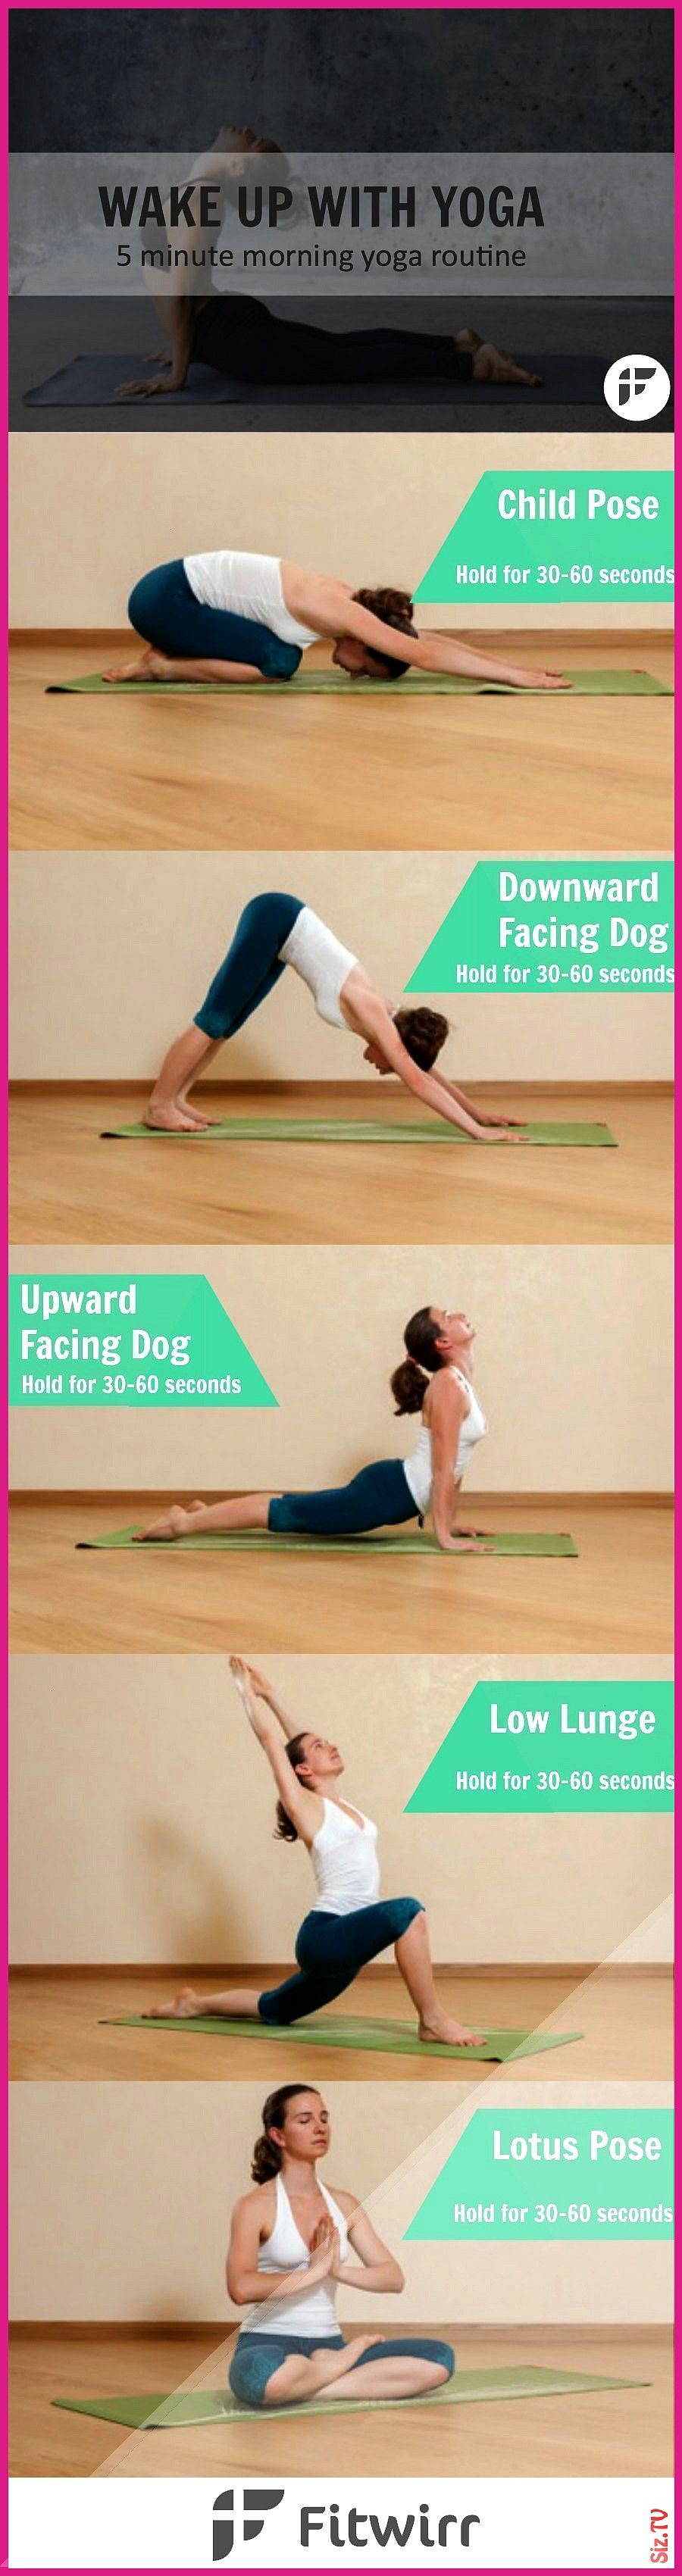 #morningyoga #tutorials #exercisi #exercise #morning #stidham #routine #fitness #workout #healthy #l...